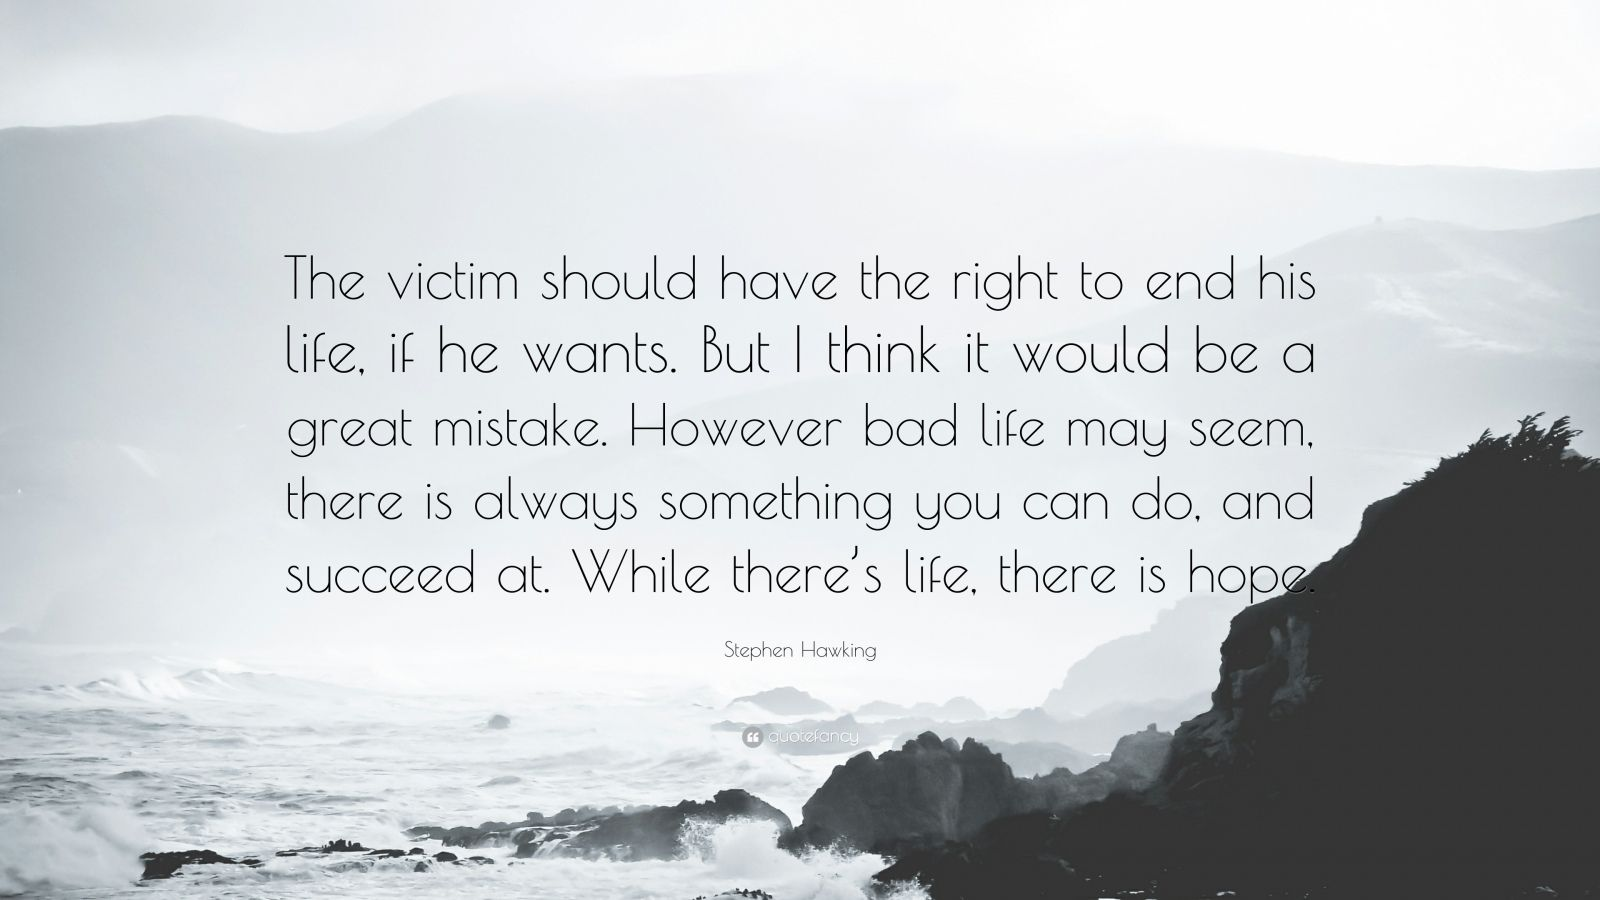 """Stephen Hawking Quote: """"The victim should have the right to end his life, if he wants. But I think it would be a great mistake. However bad life may seem, there is always something you can do, and succeed at. While there's life, there is hope."""""""